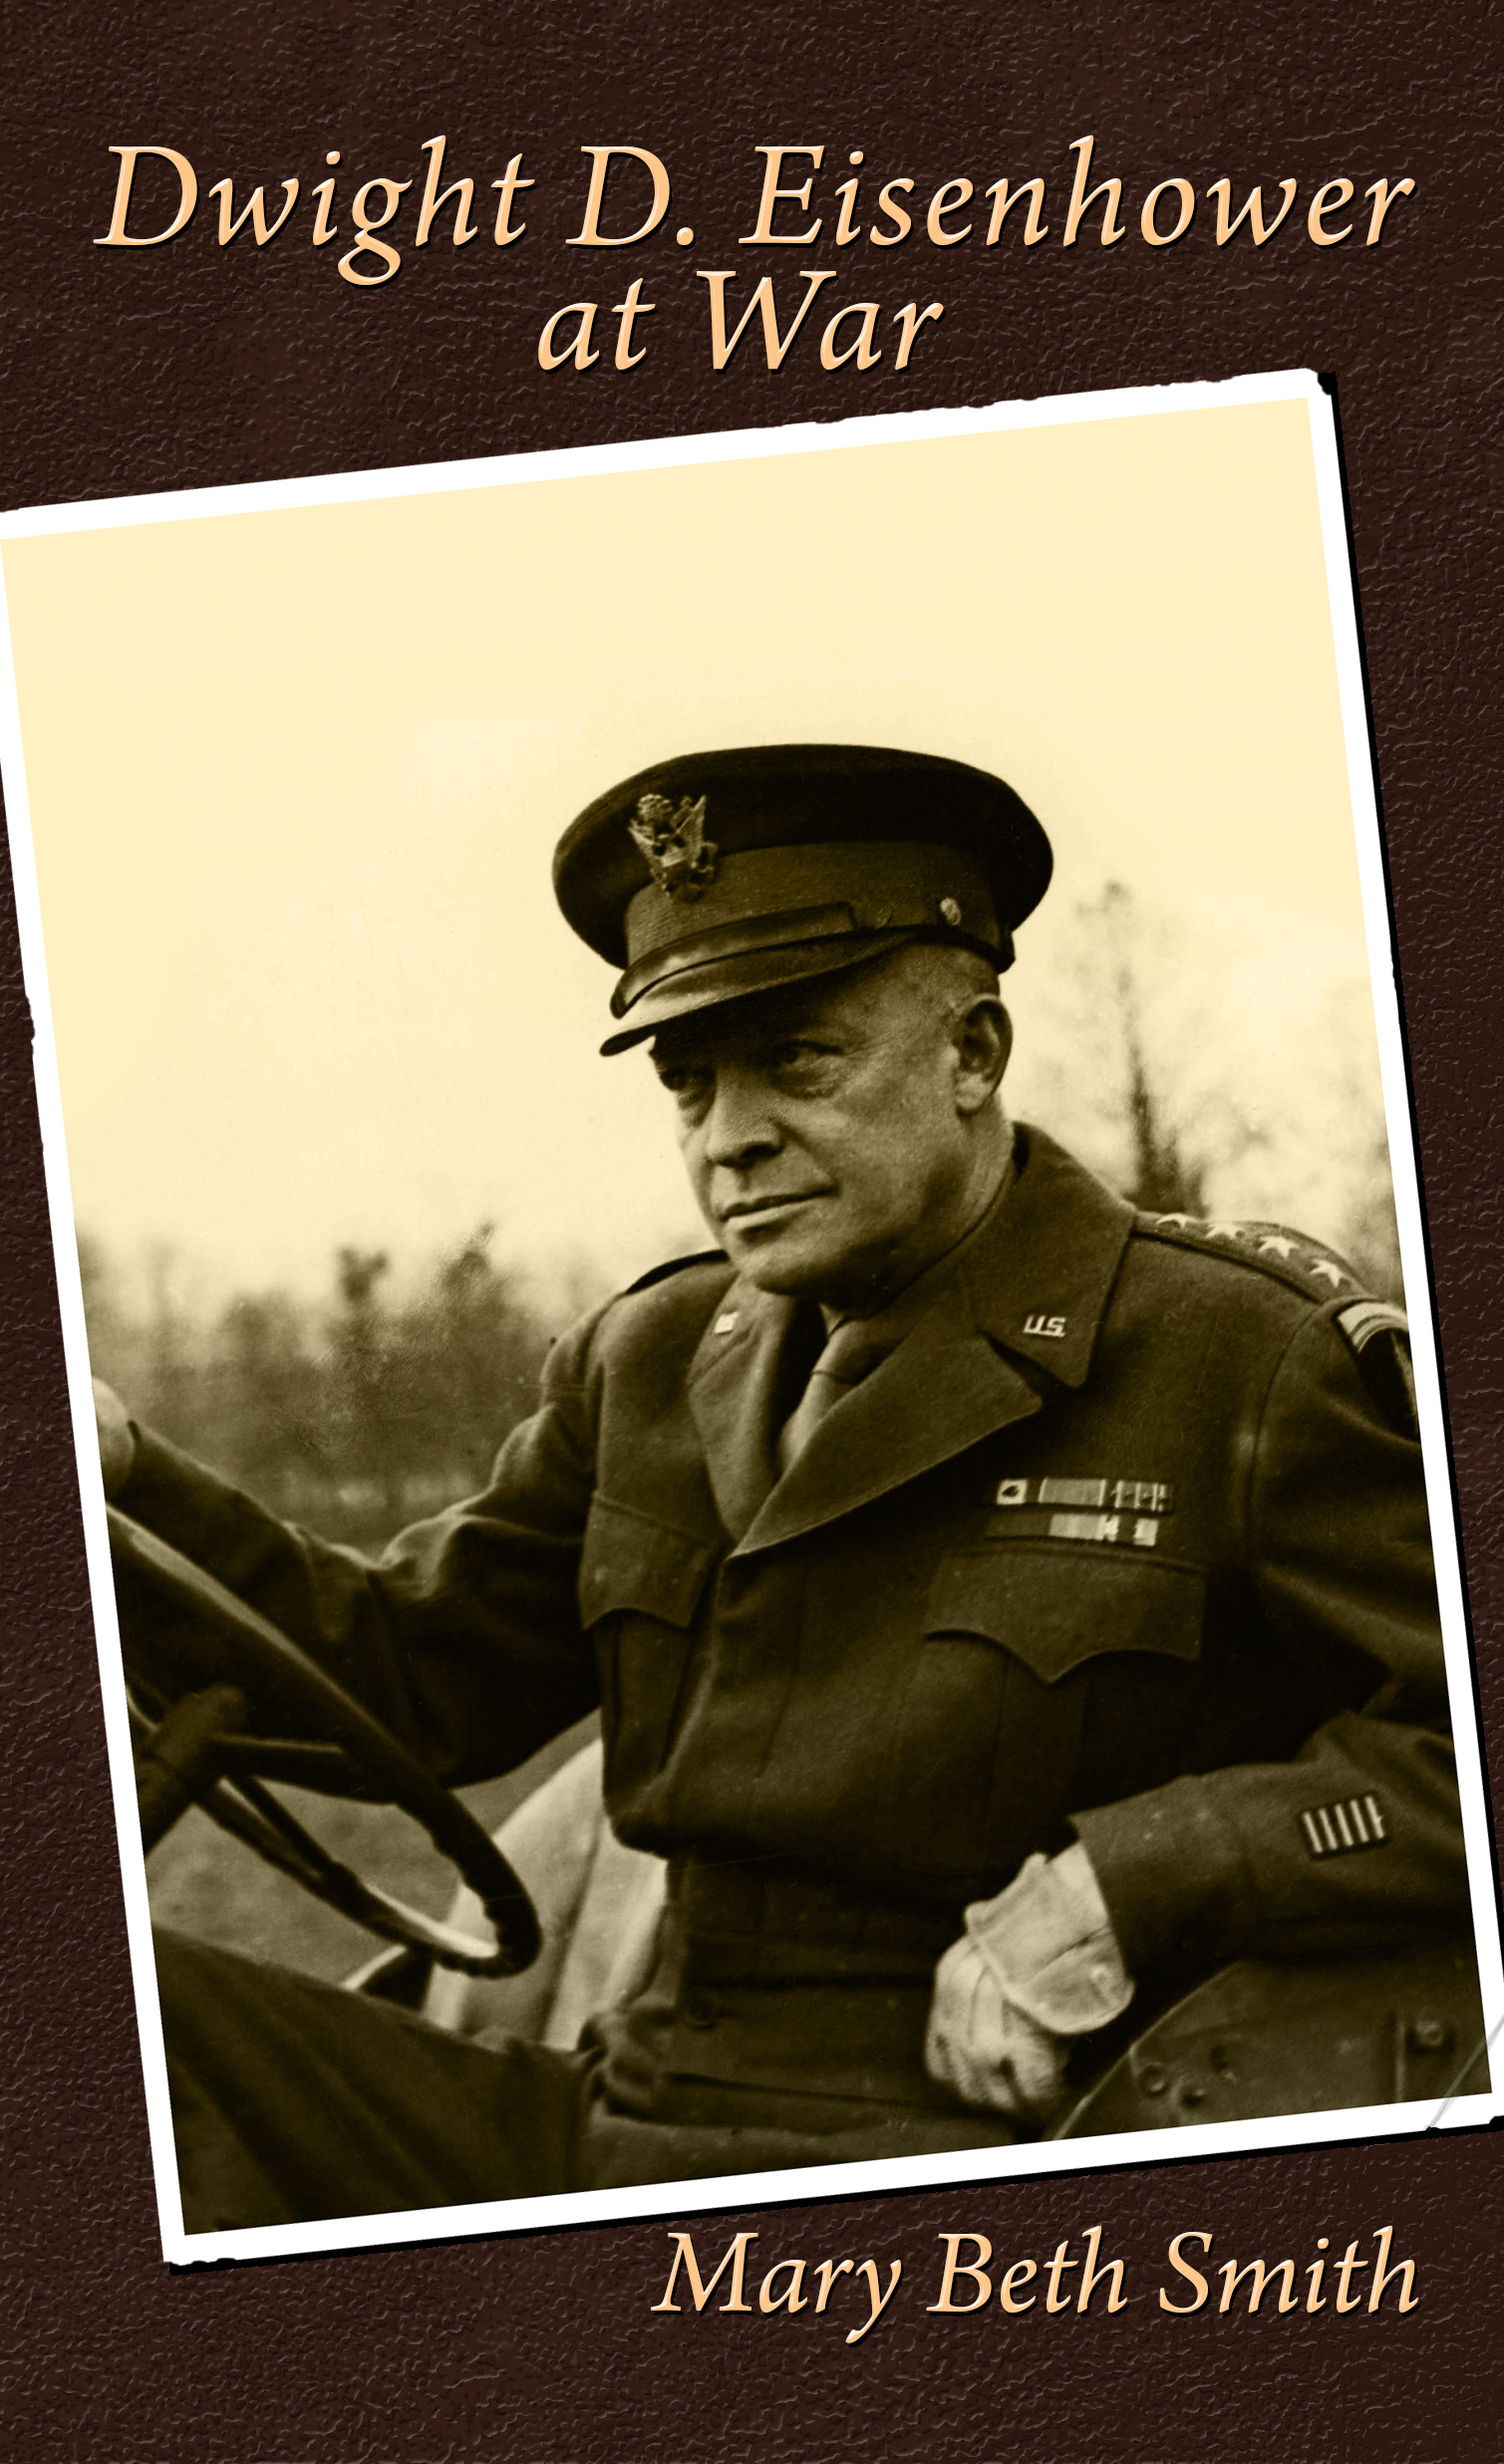 Dwight D. Eisenhower at War, by Mary Beth Smith